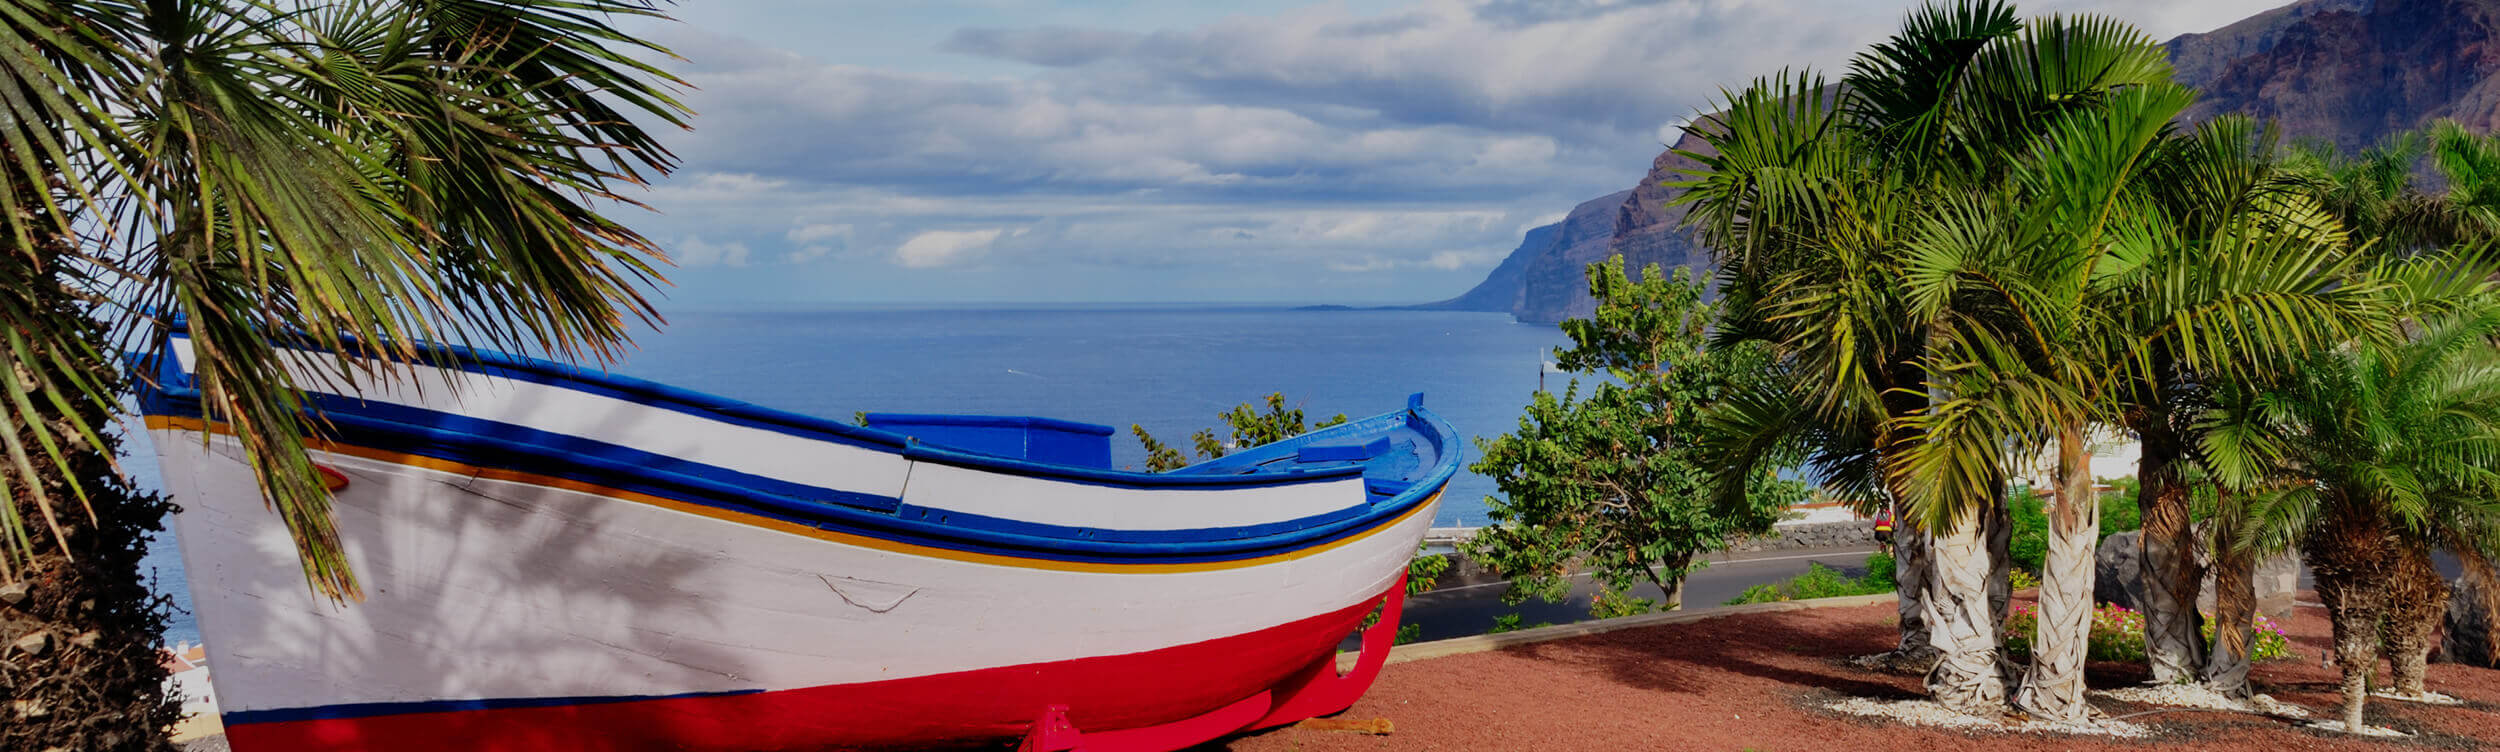 Tenerife property Seaview with a boat